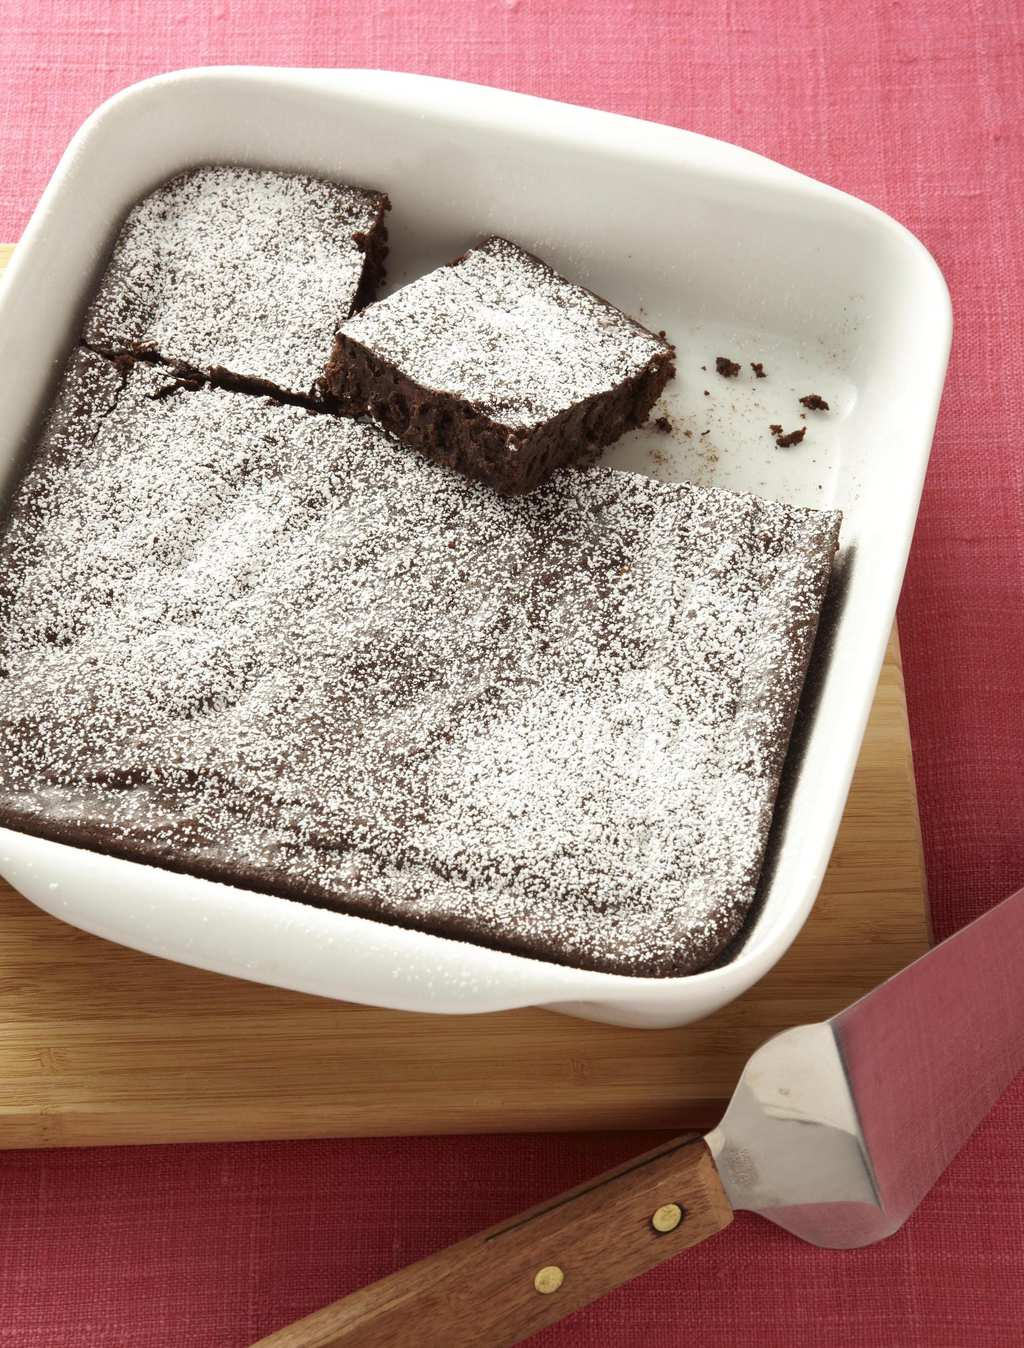 Fudgy Squash Brownies are baked in a square pan and dusted with confectioners' sugar